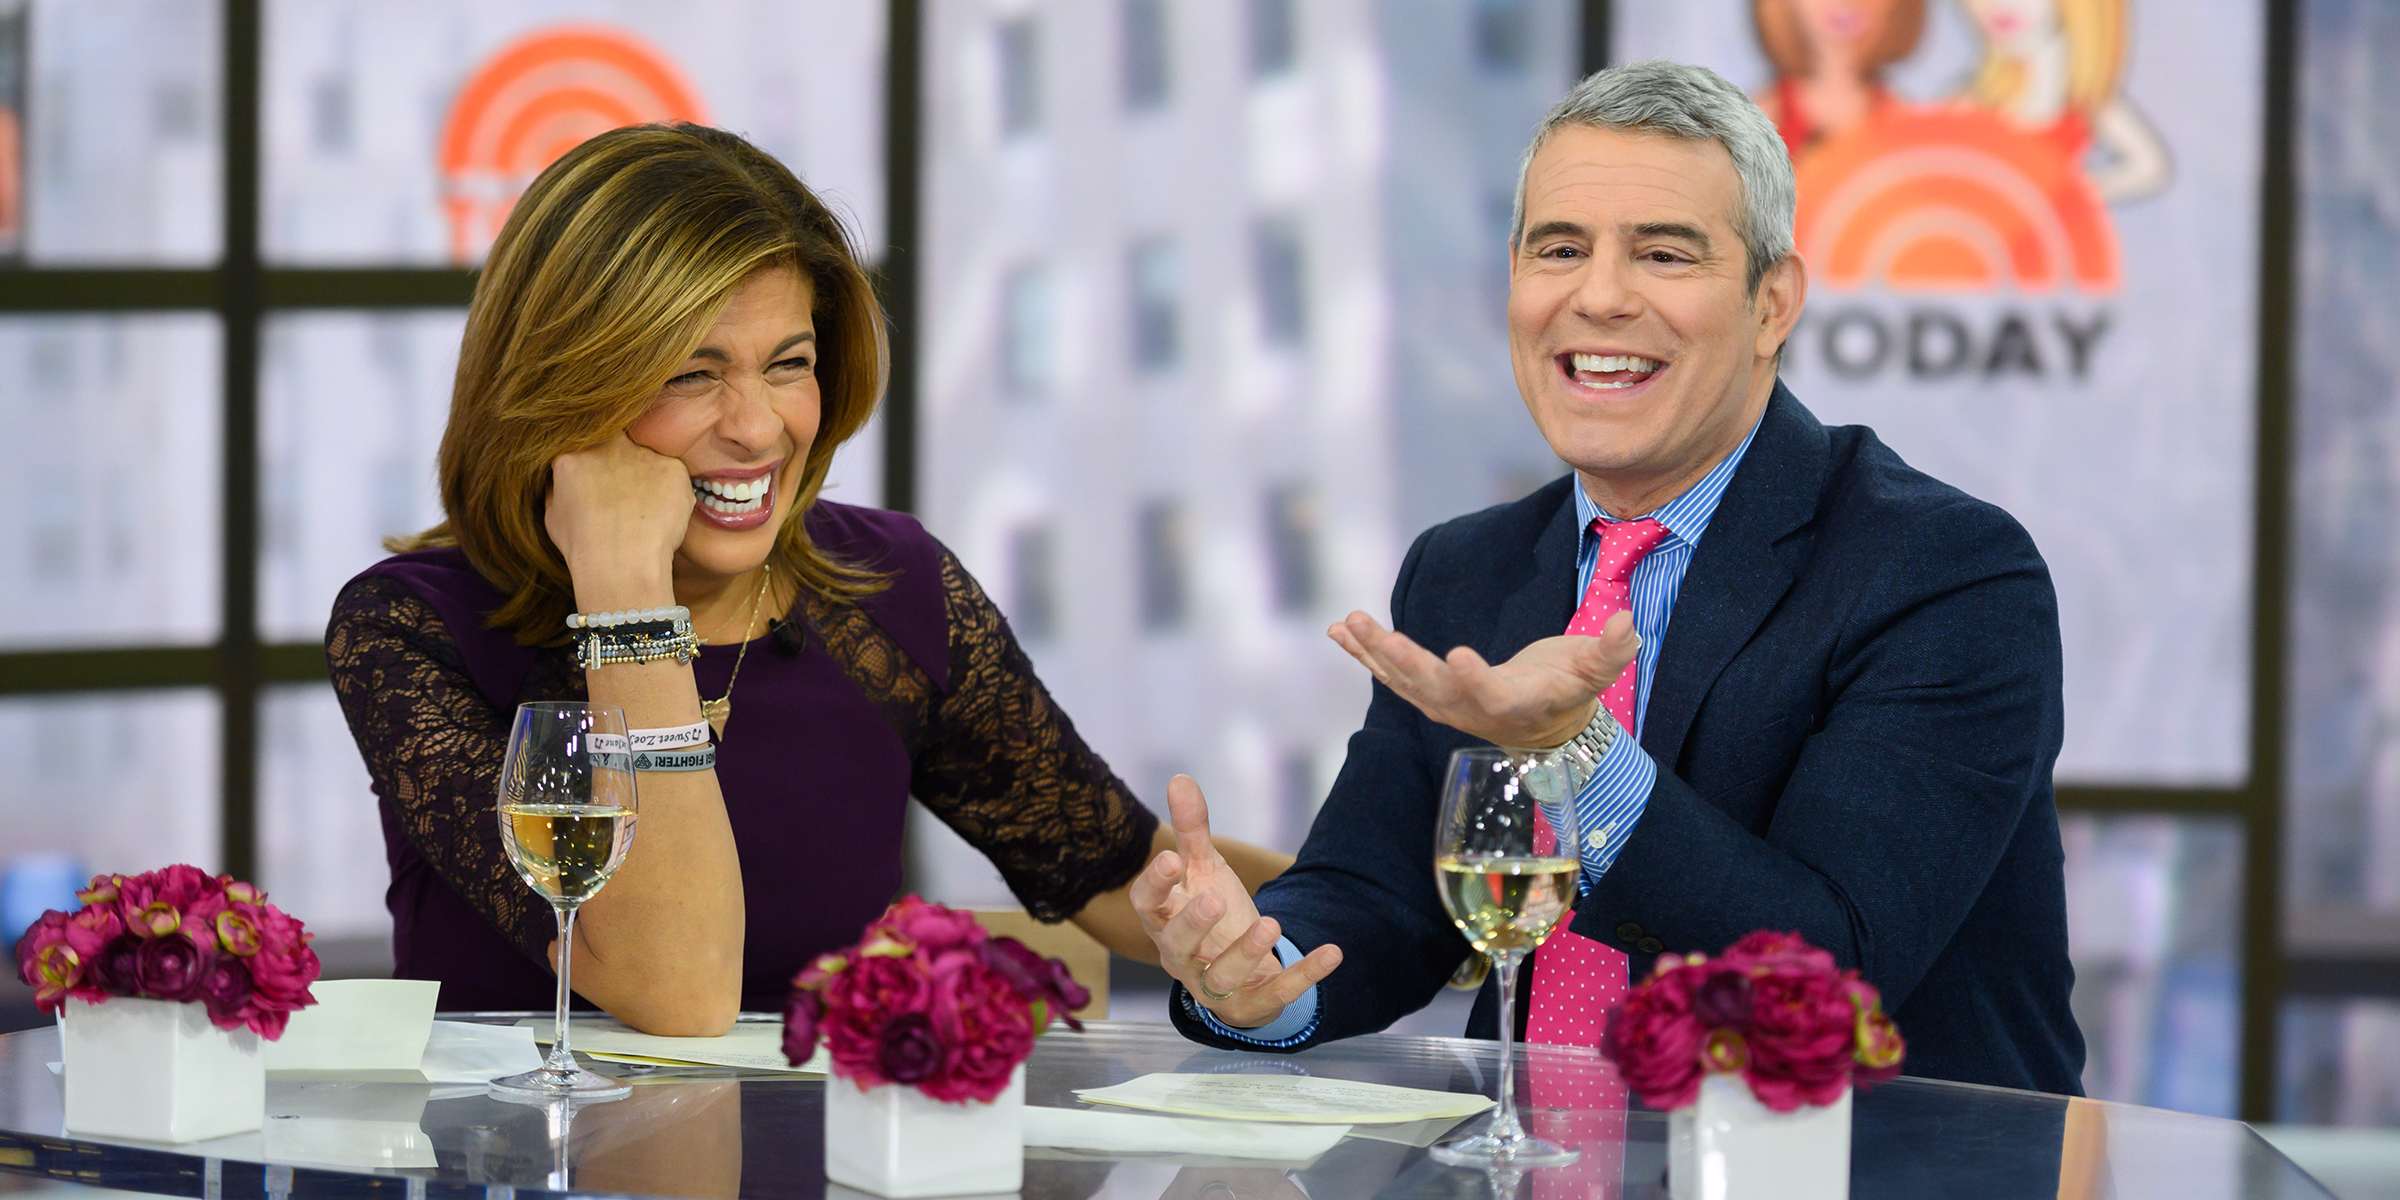 Andy Cohen and Hoda Kotb joke about having the same hairstyle in college